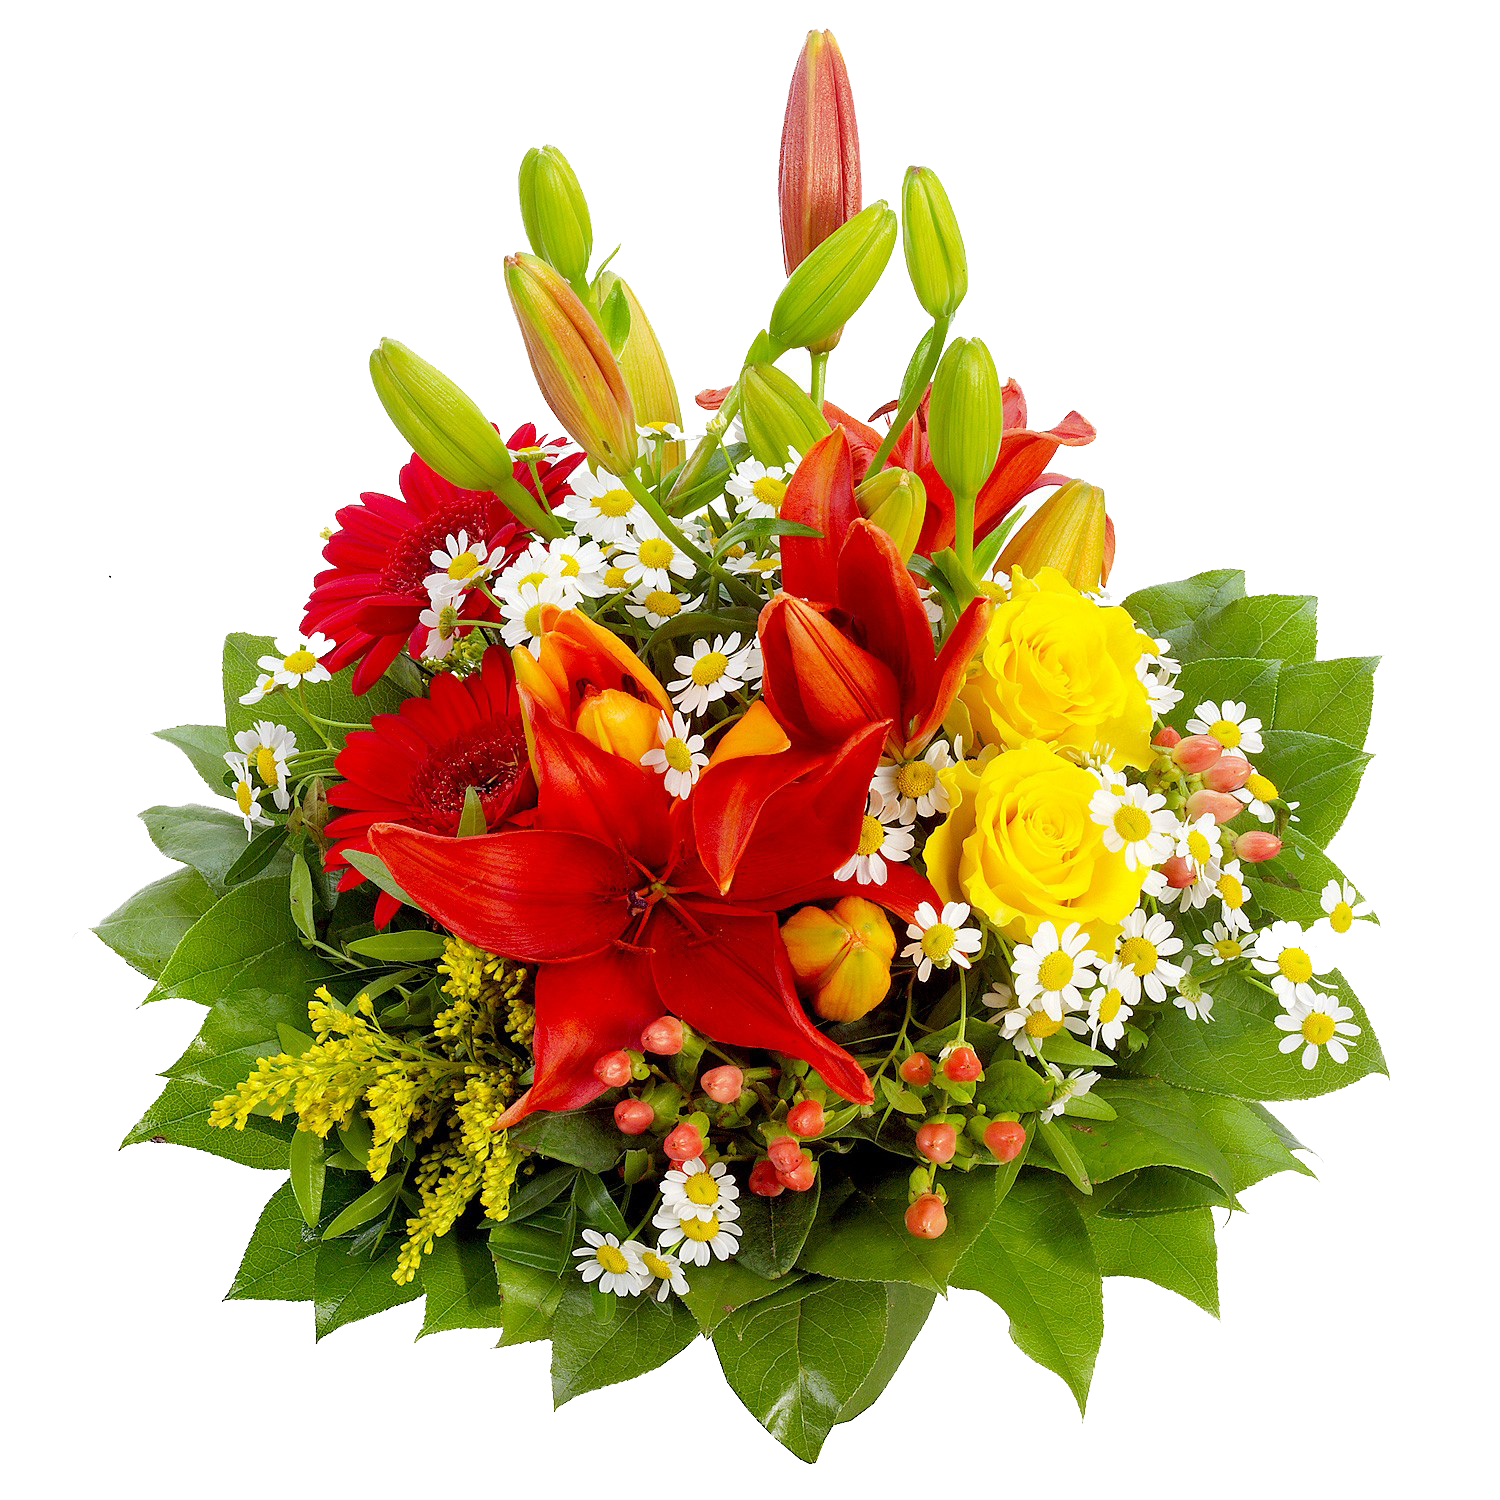 Flower bouquet png. Images transparent free download